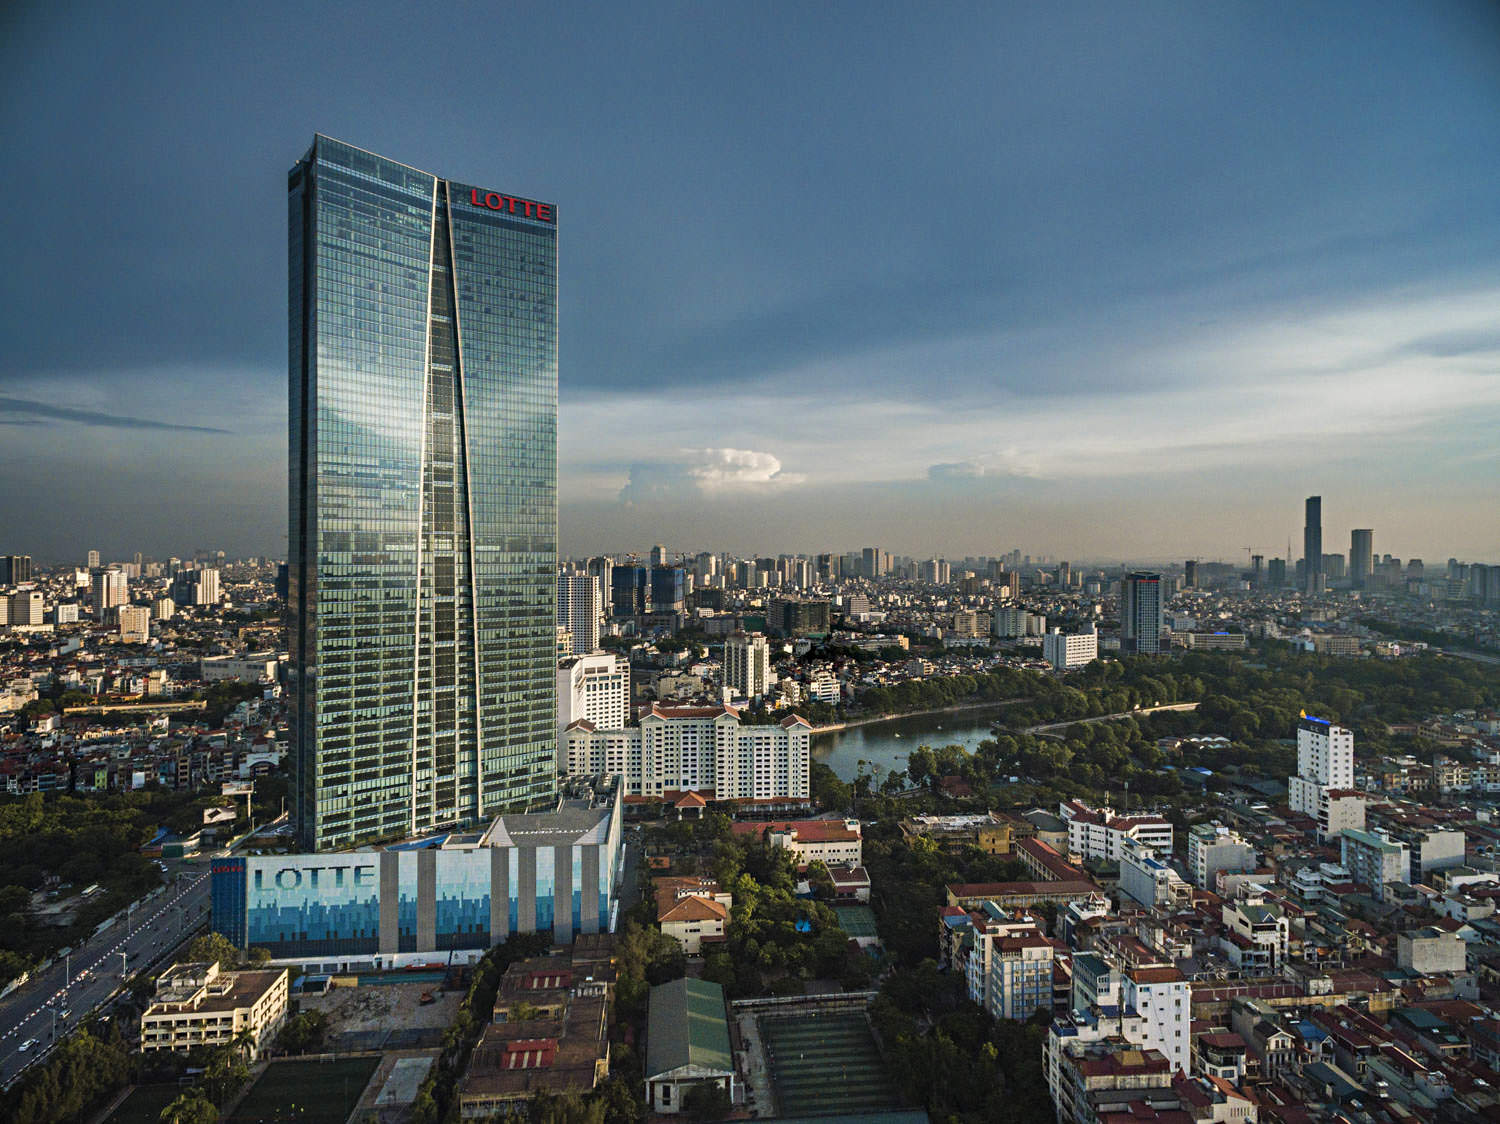 Aerial view of the Lotte Tower in Hanoi | Architecture photographer in Vietnam | Francis Roux Porfolio